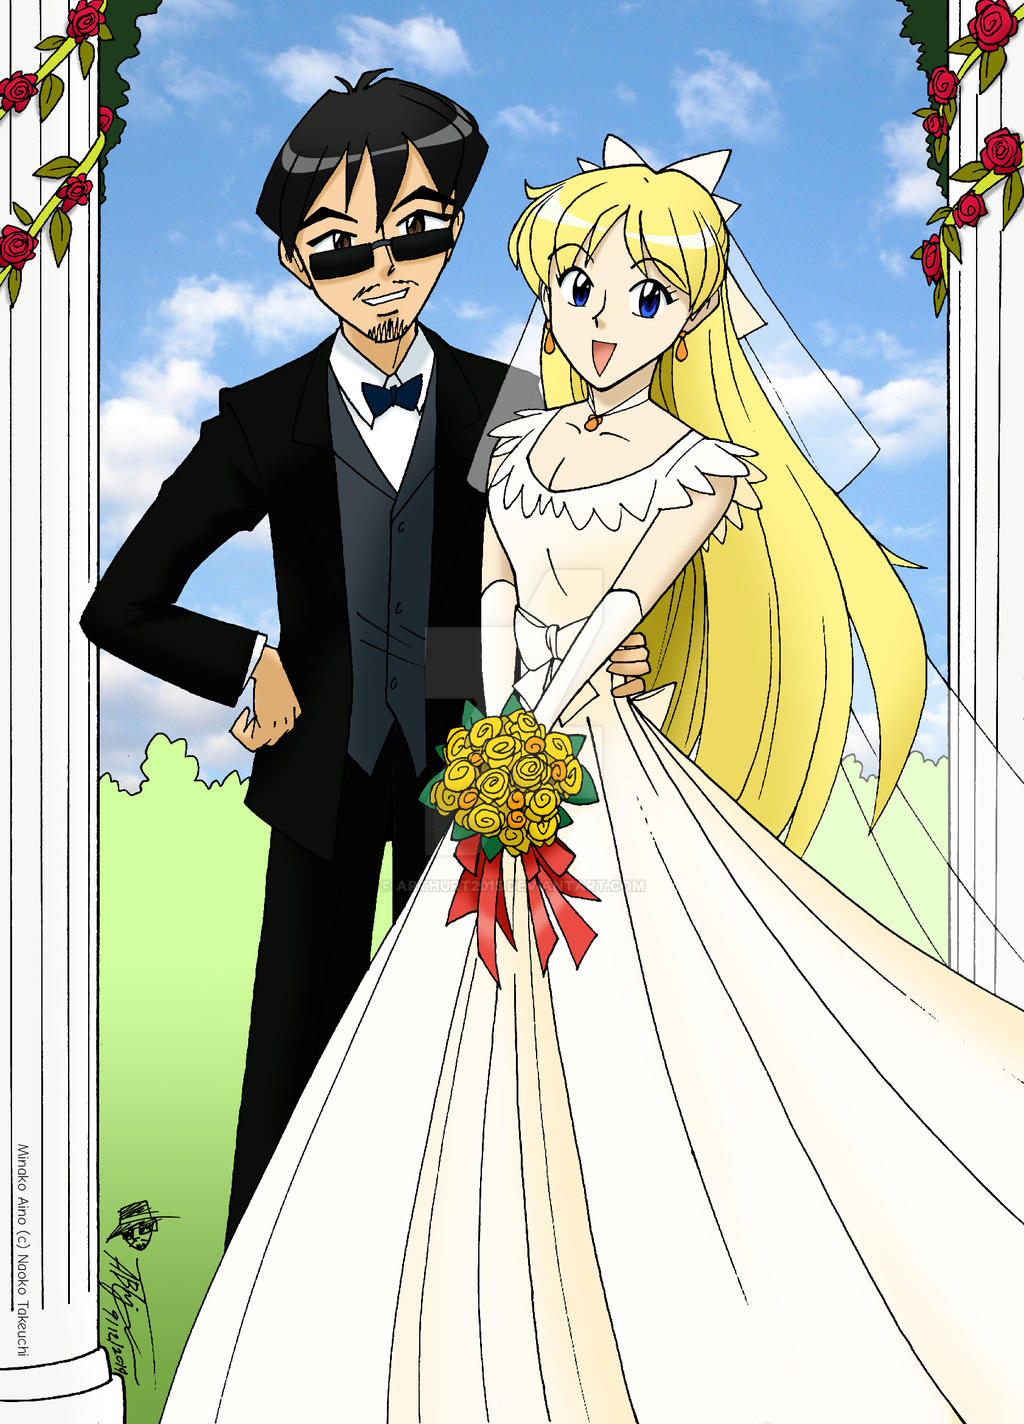 arthur and mina married by arthurt2015 on deviantart